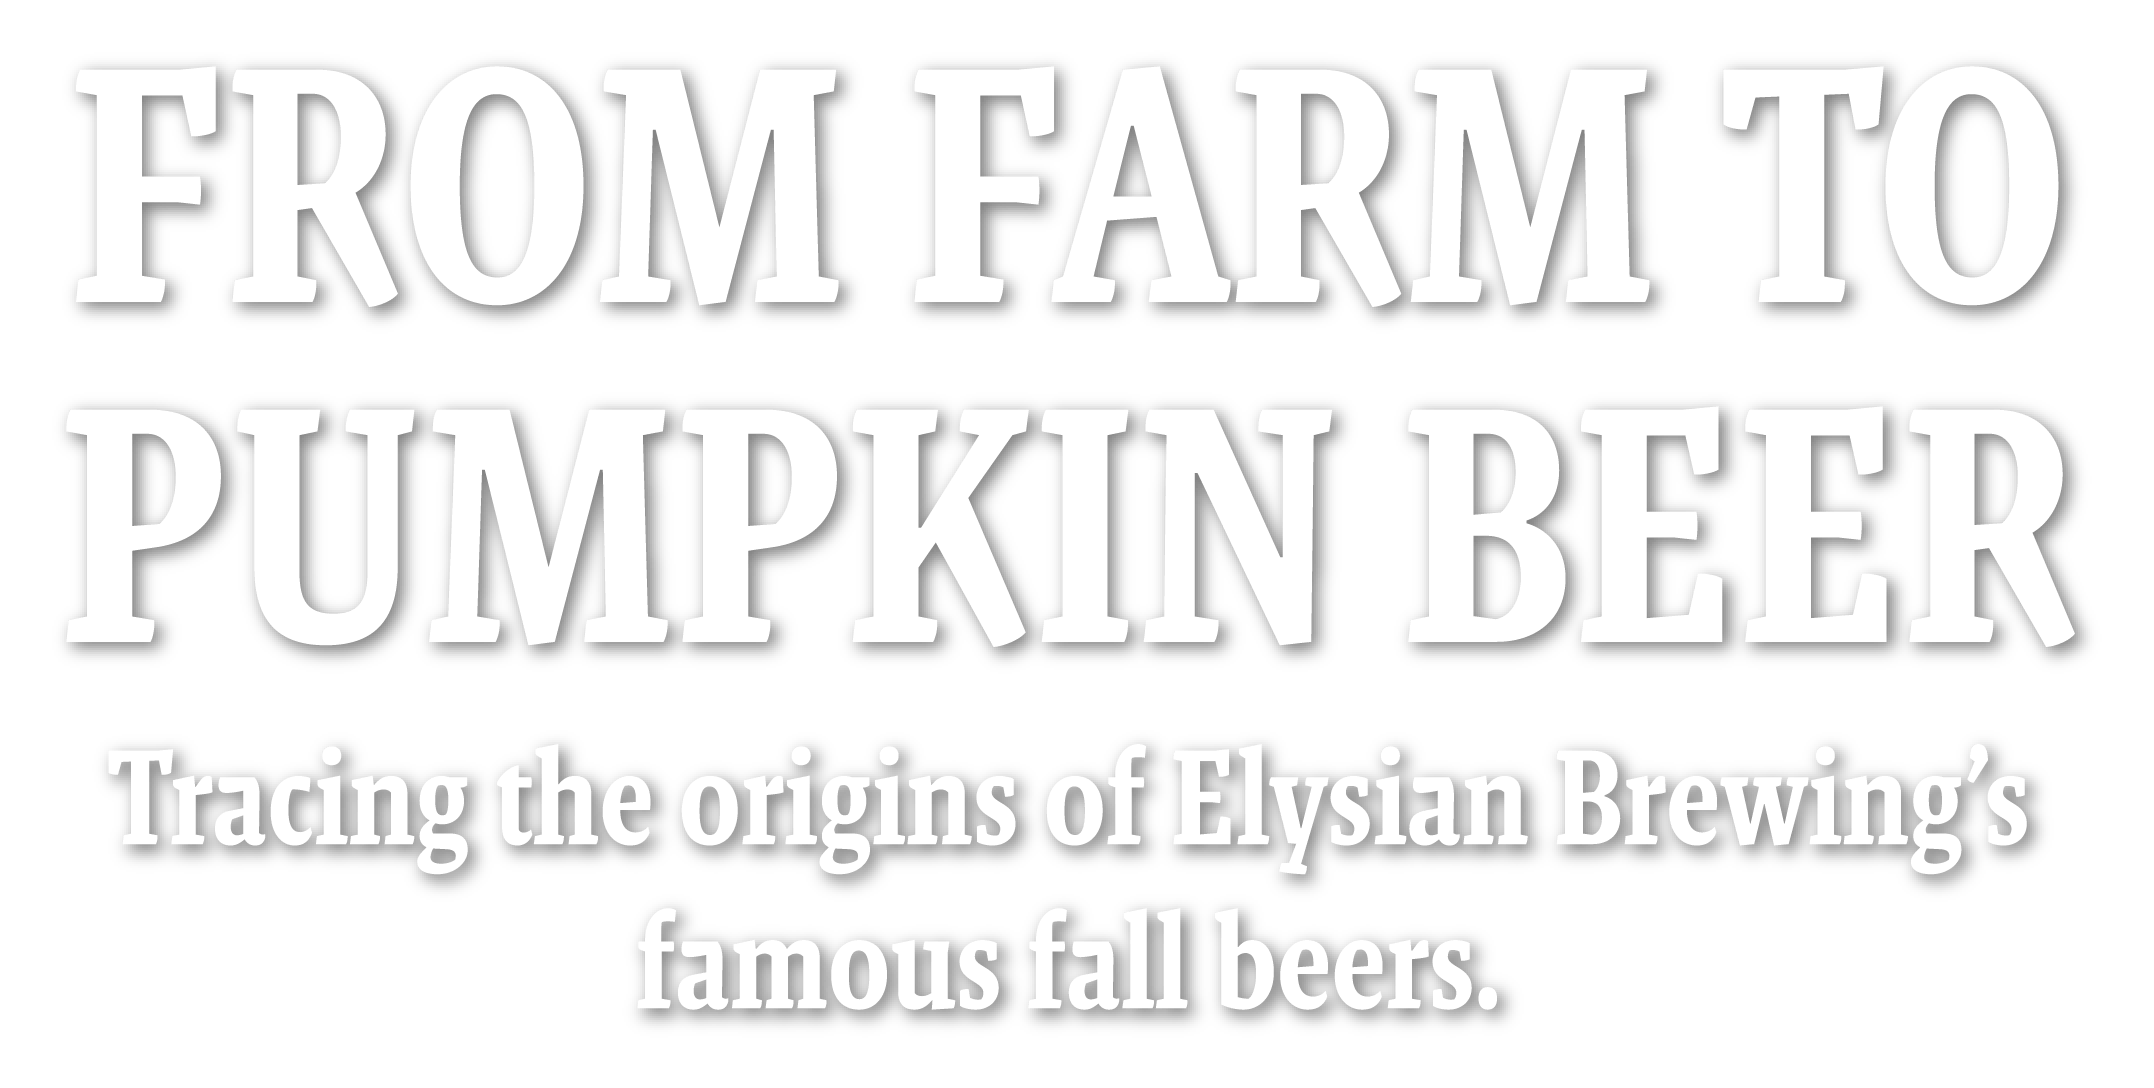 From Farm to Pumpkin Beer logo